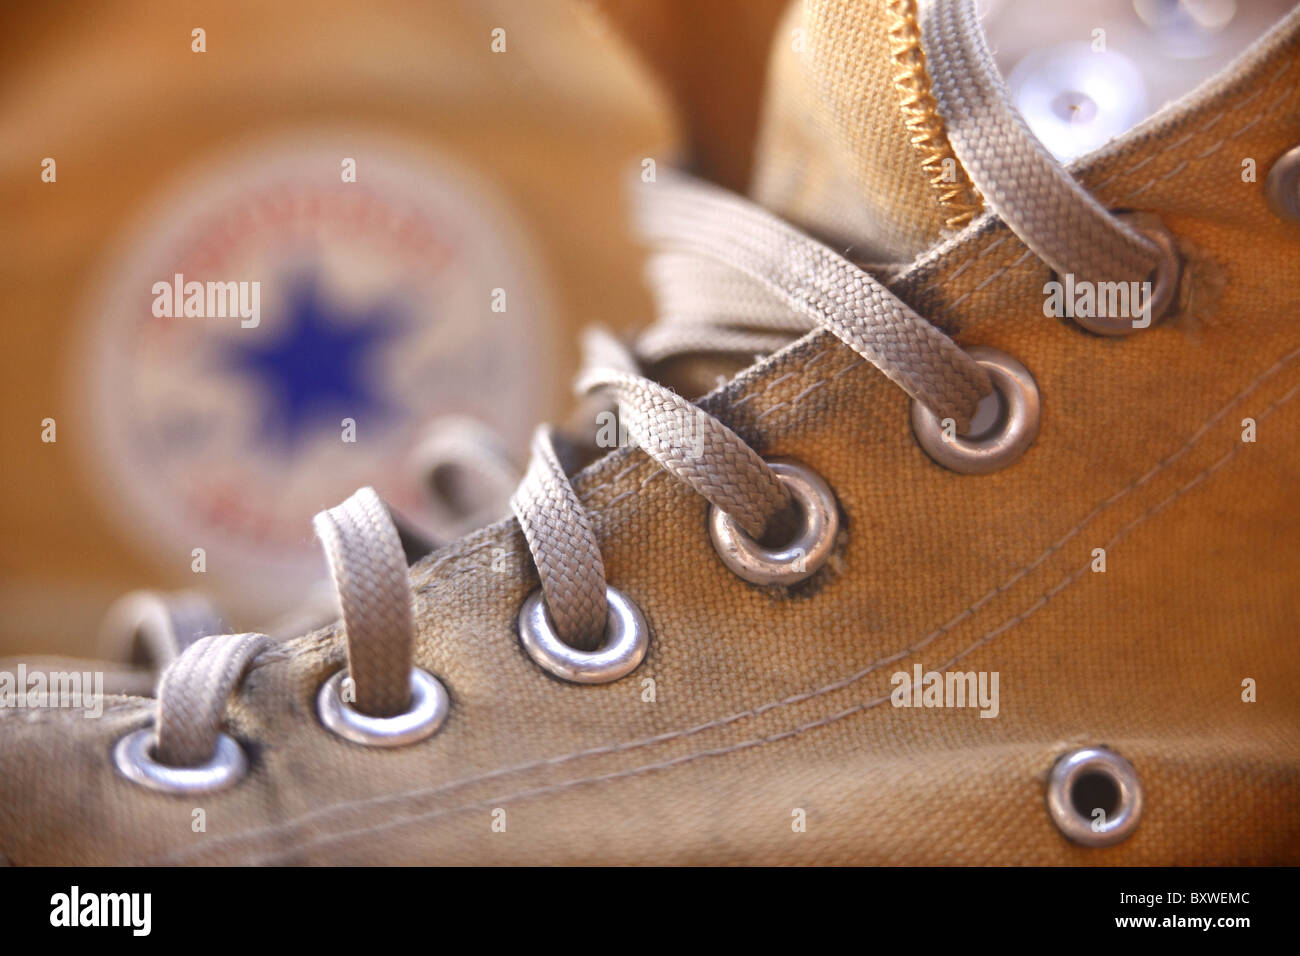 Old converse sneakers. - Stock Image